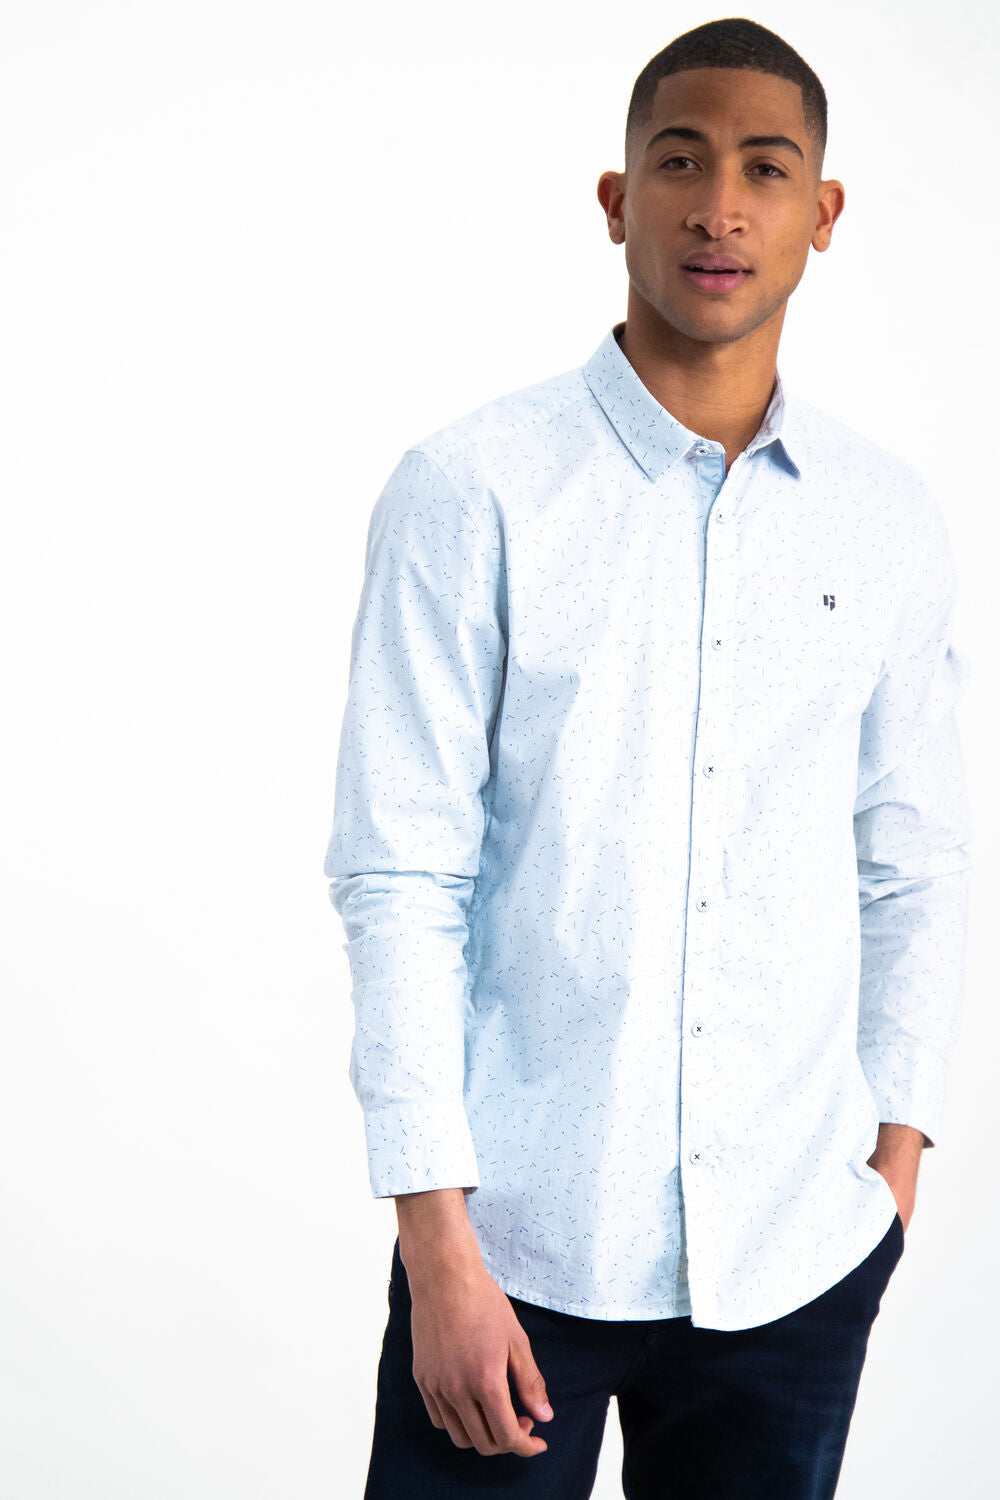 Garcia LS Casual Stretch Pale blue Shirt